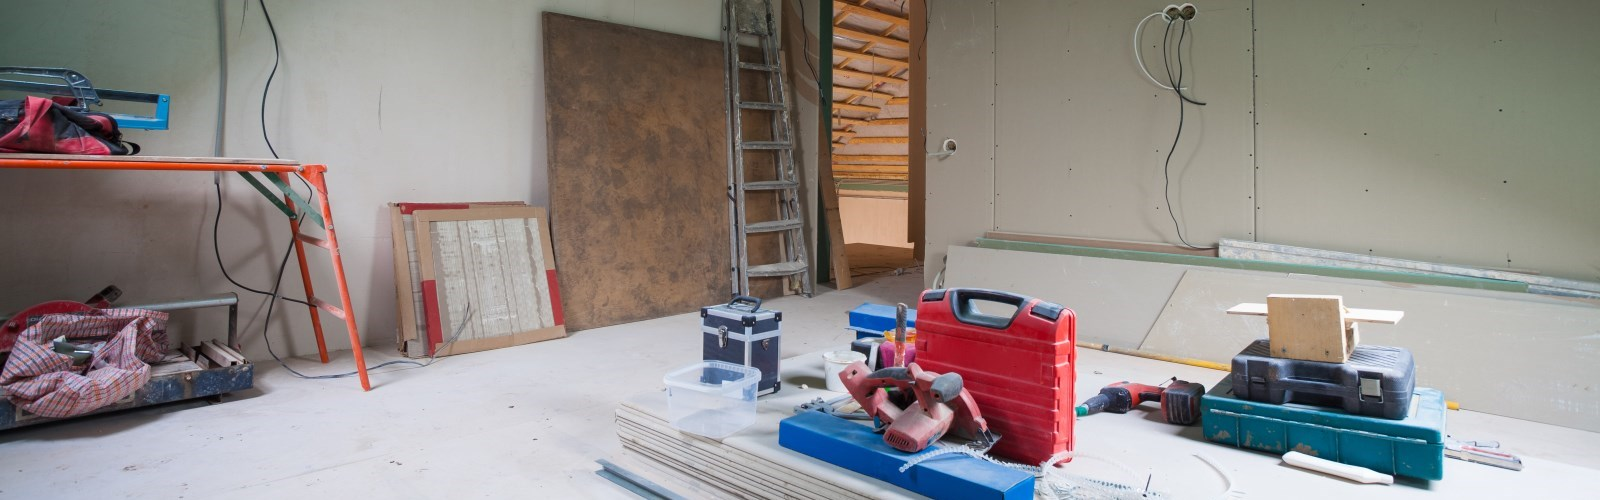 Image of attic being renovated into an in-law suite